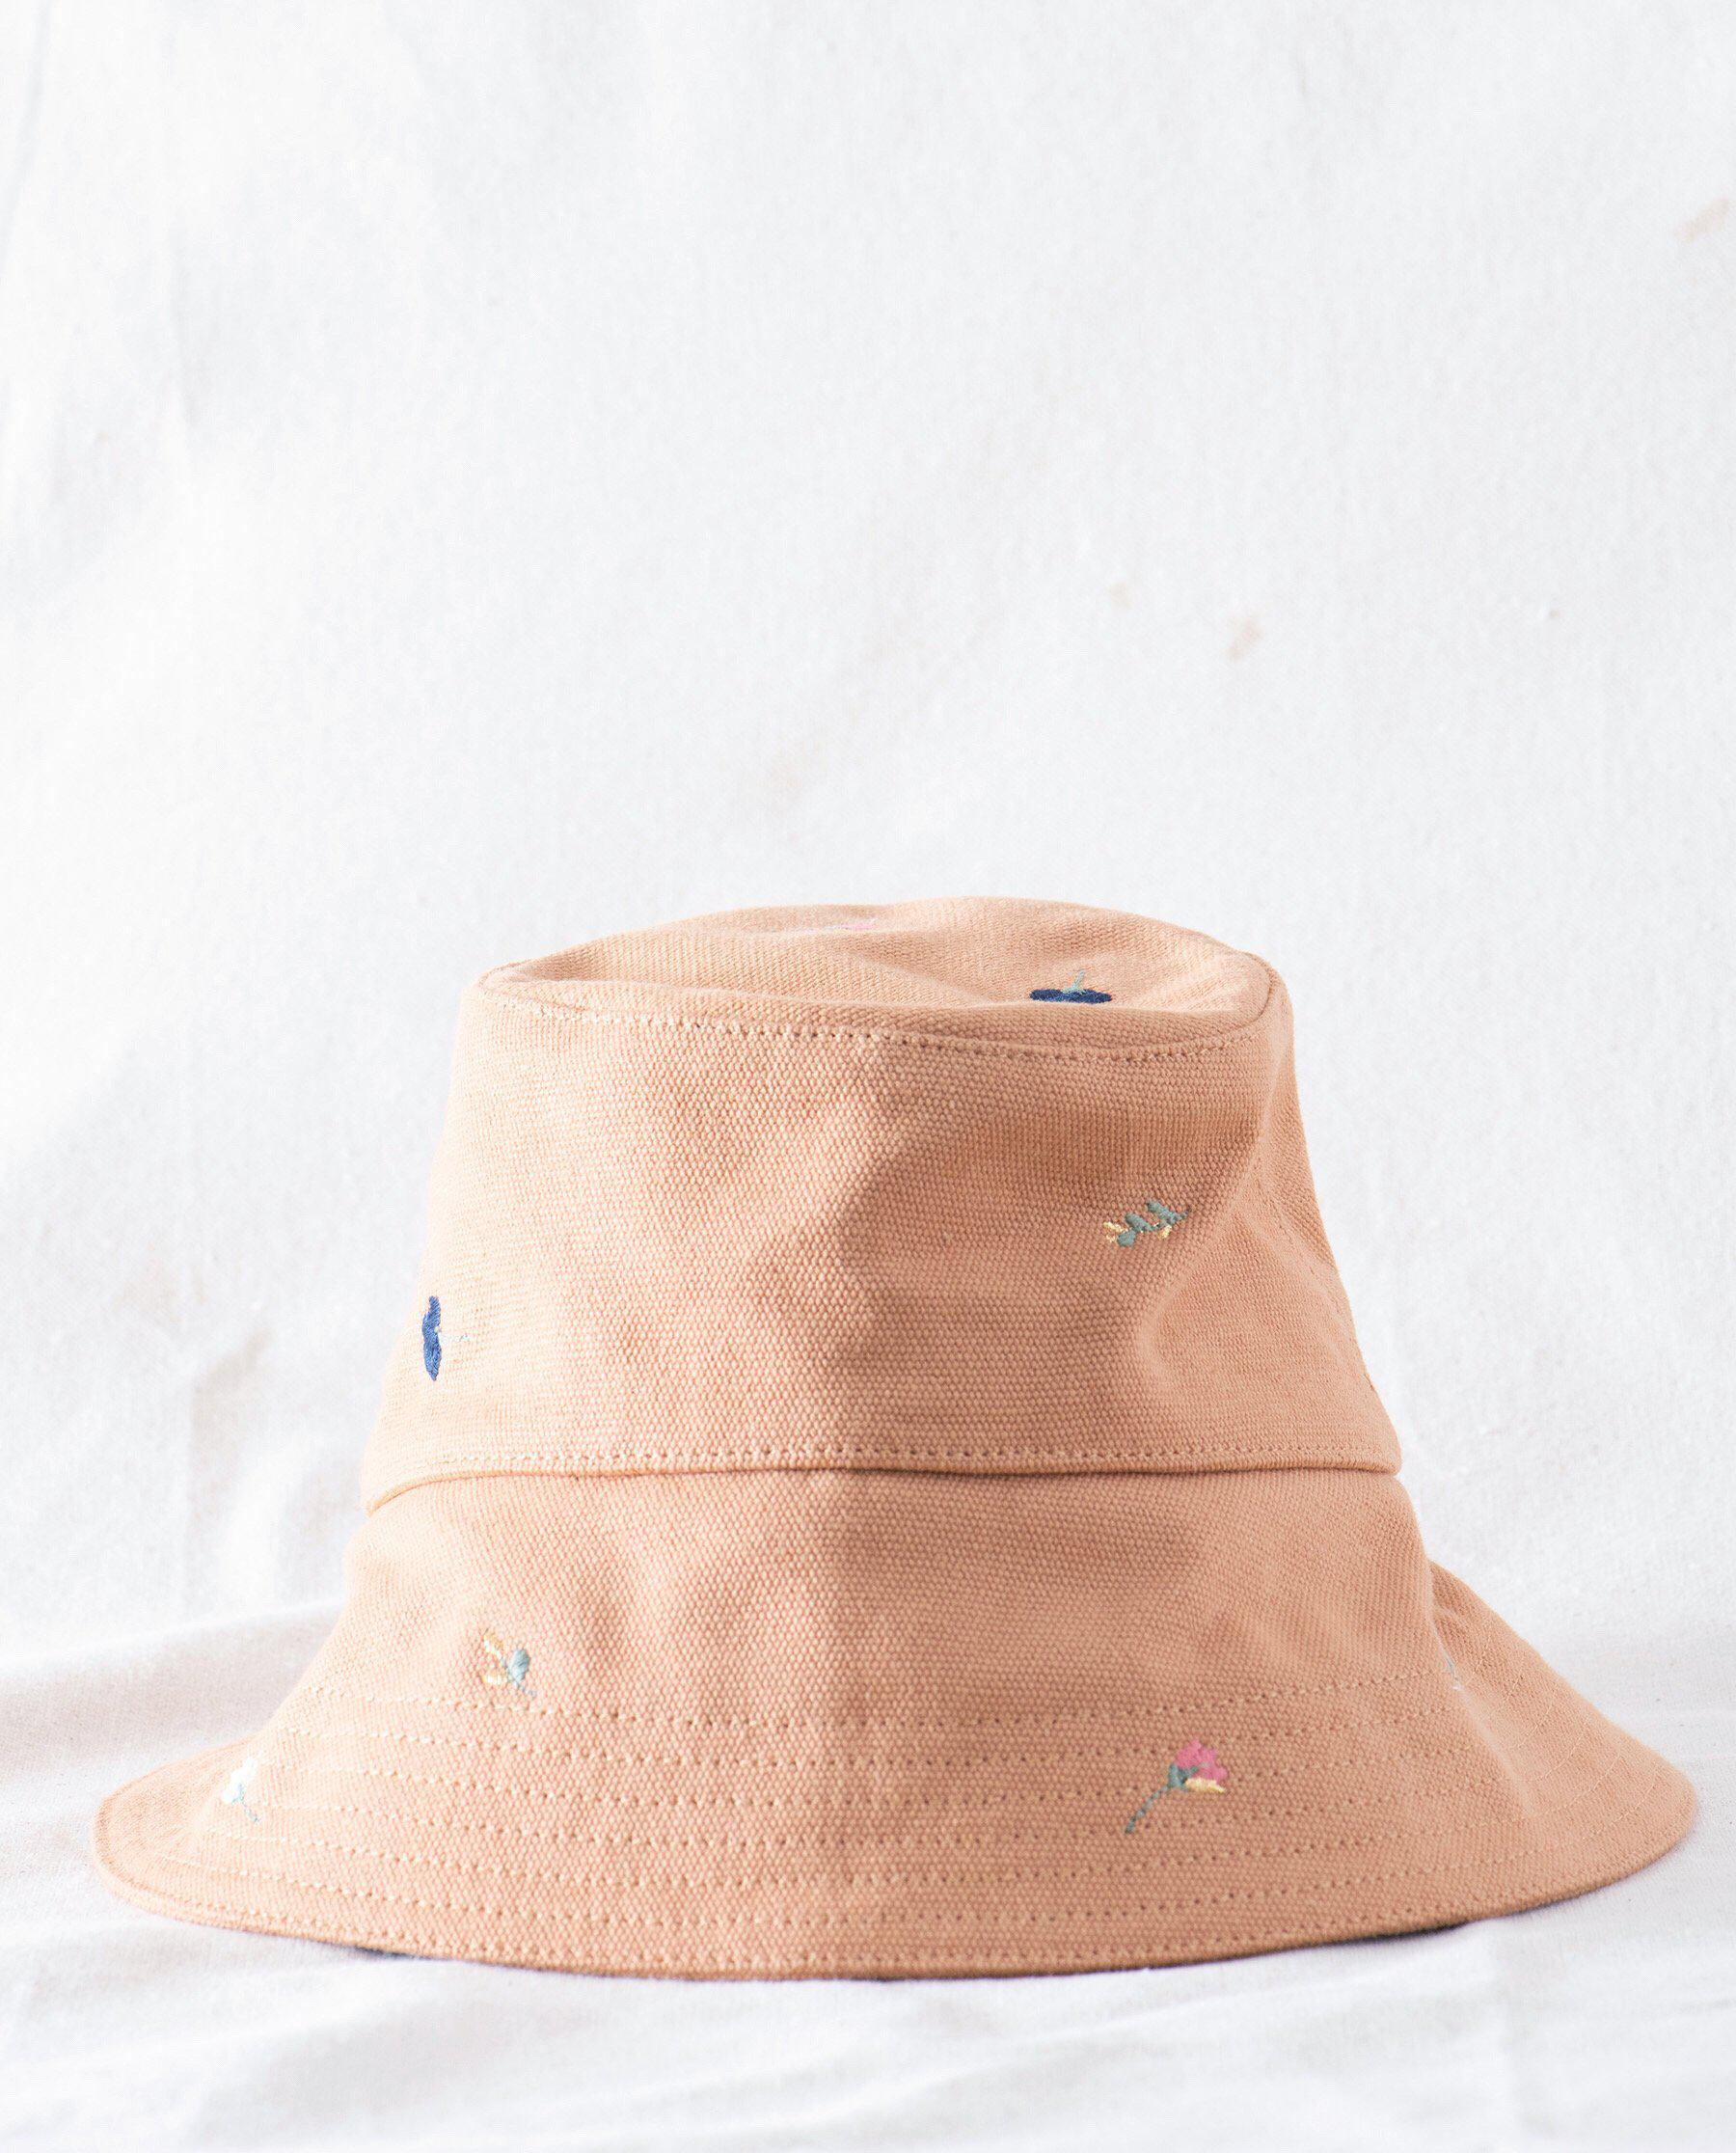 The Bucket Hat. -- Camel with Tossed Floral Embroidery 1